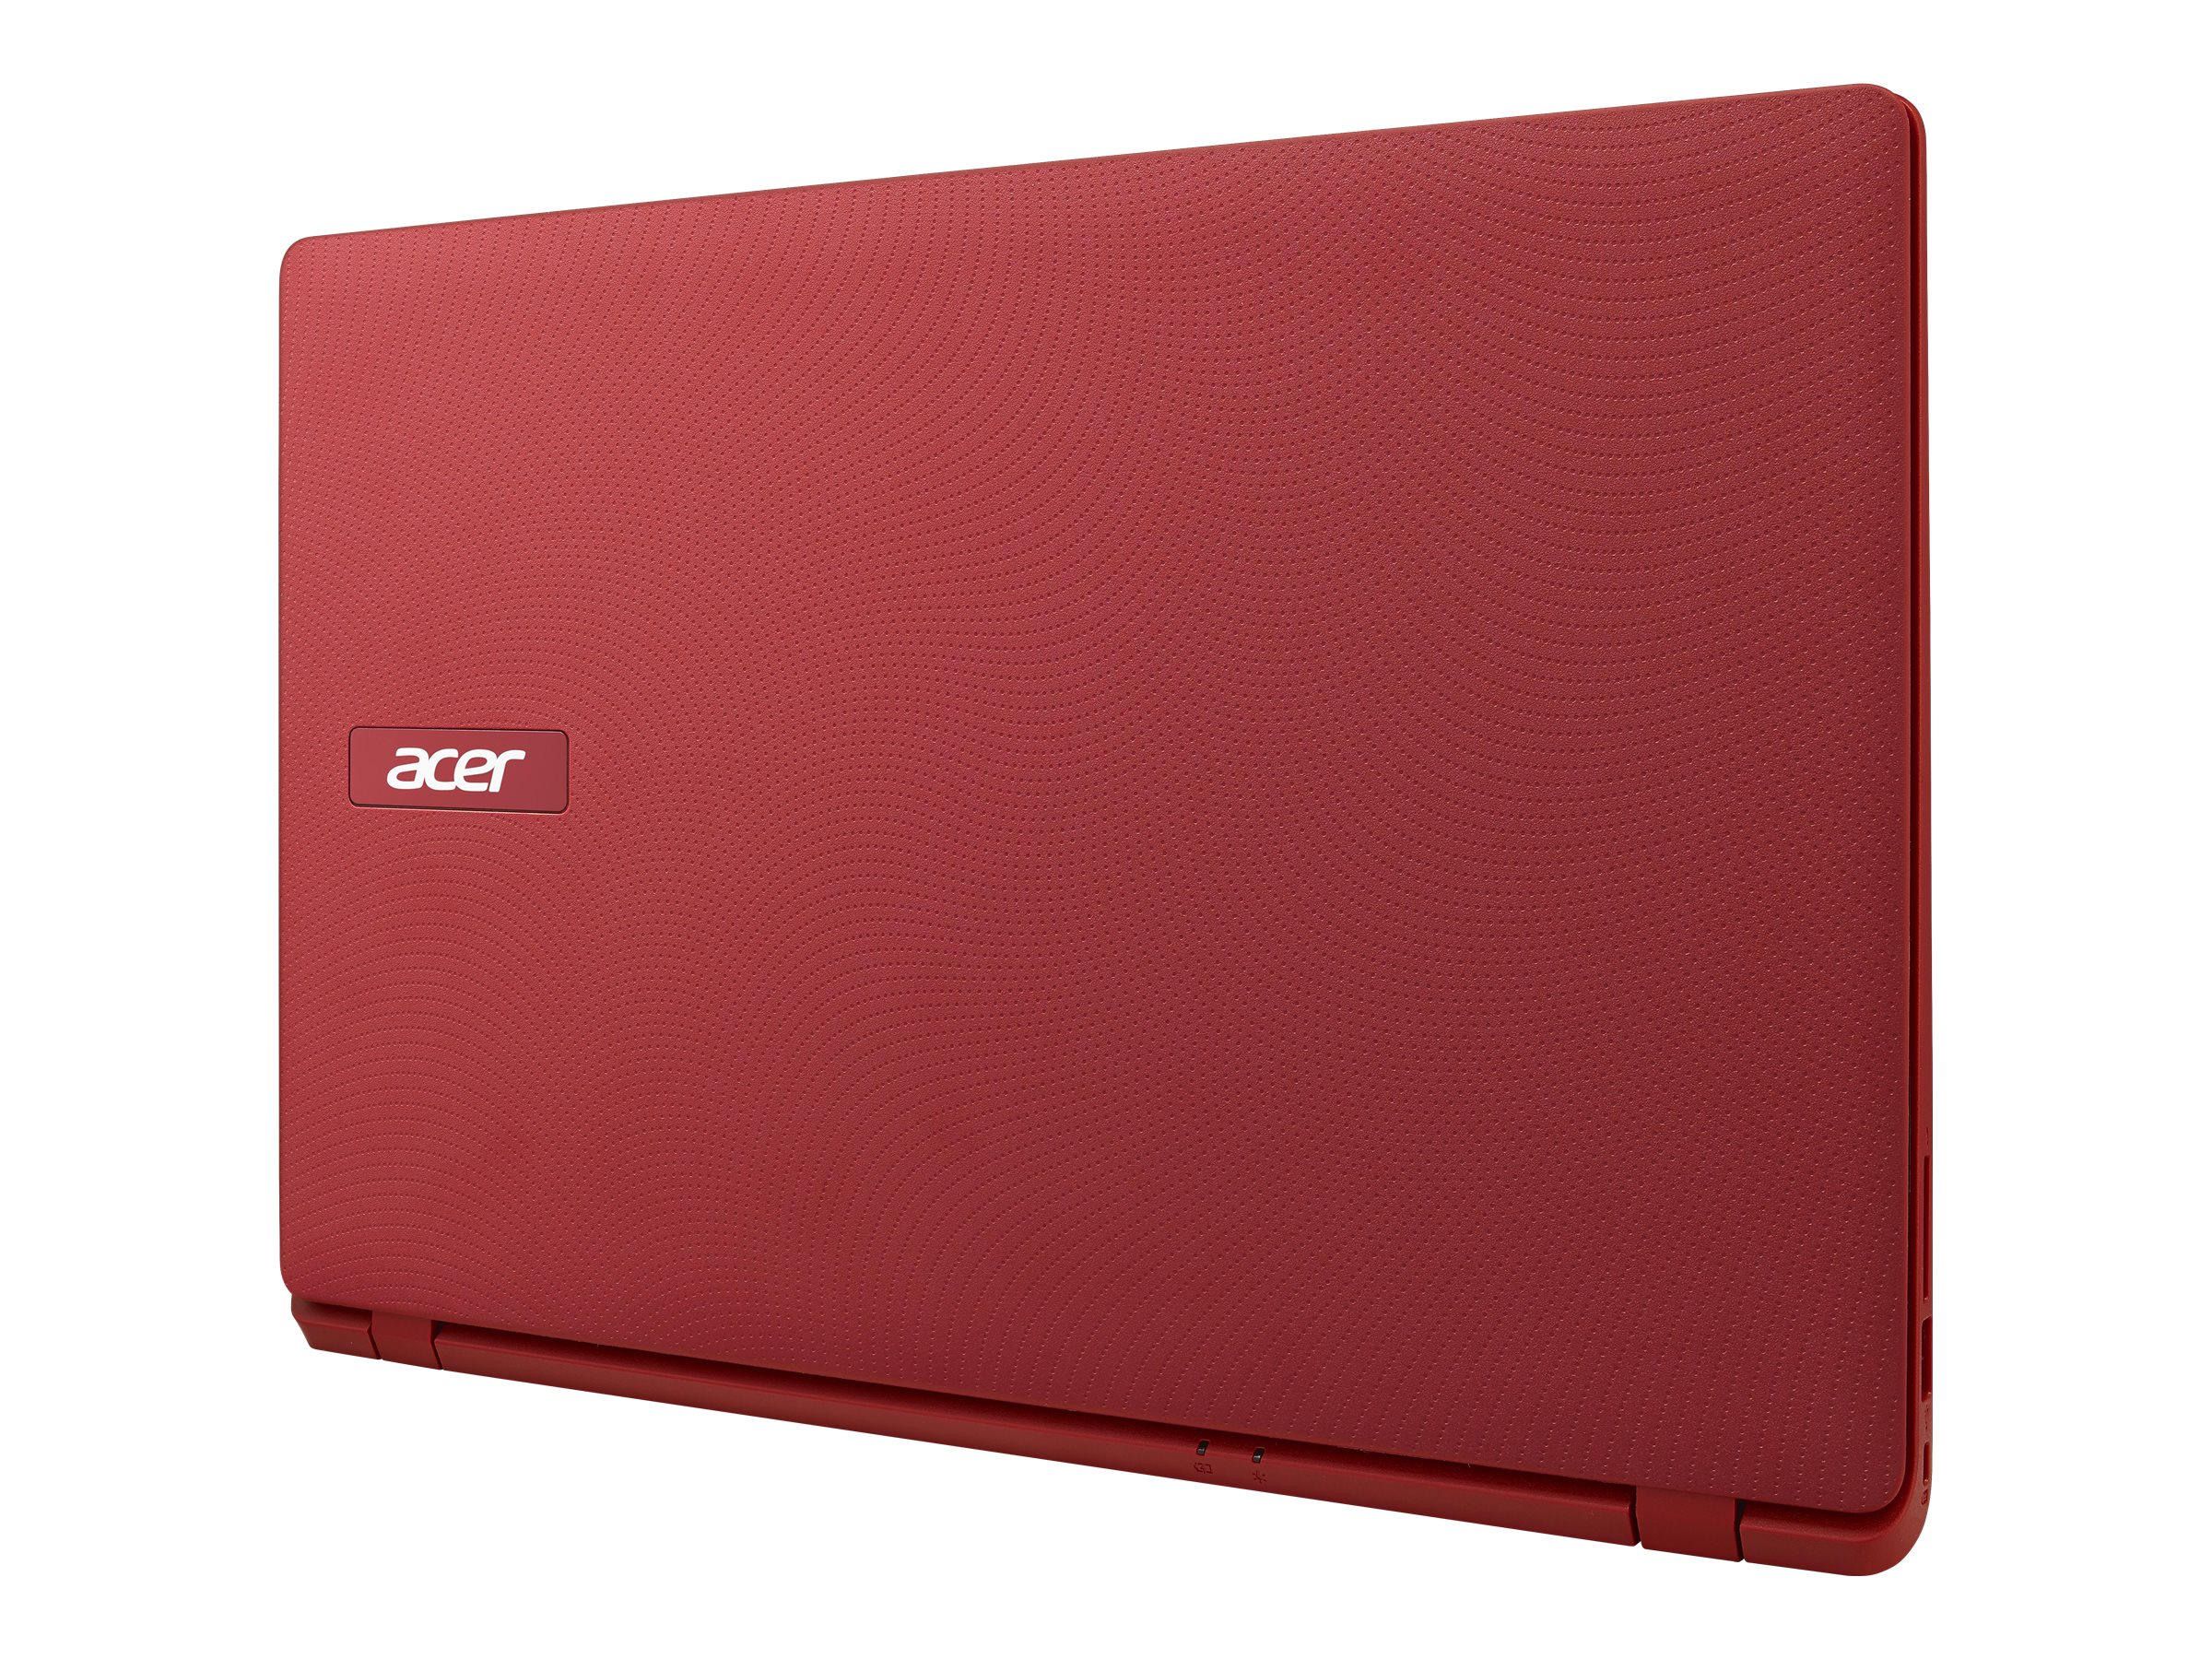 Acer NX.G2PAA.003 Image 2